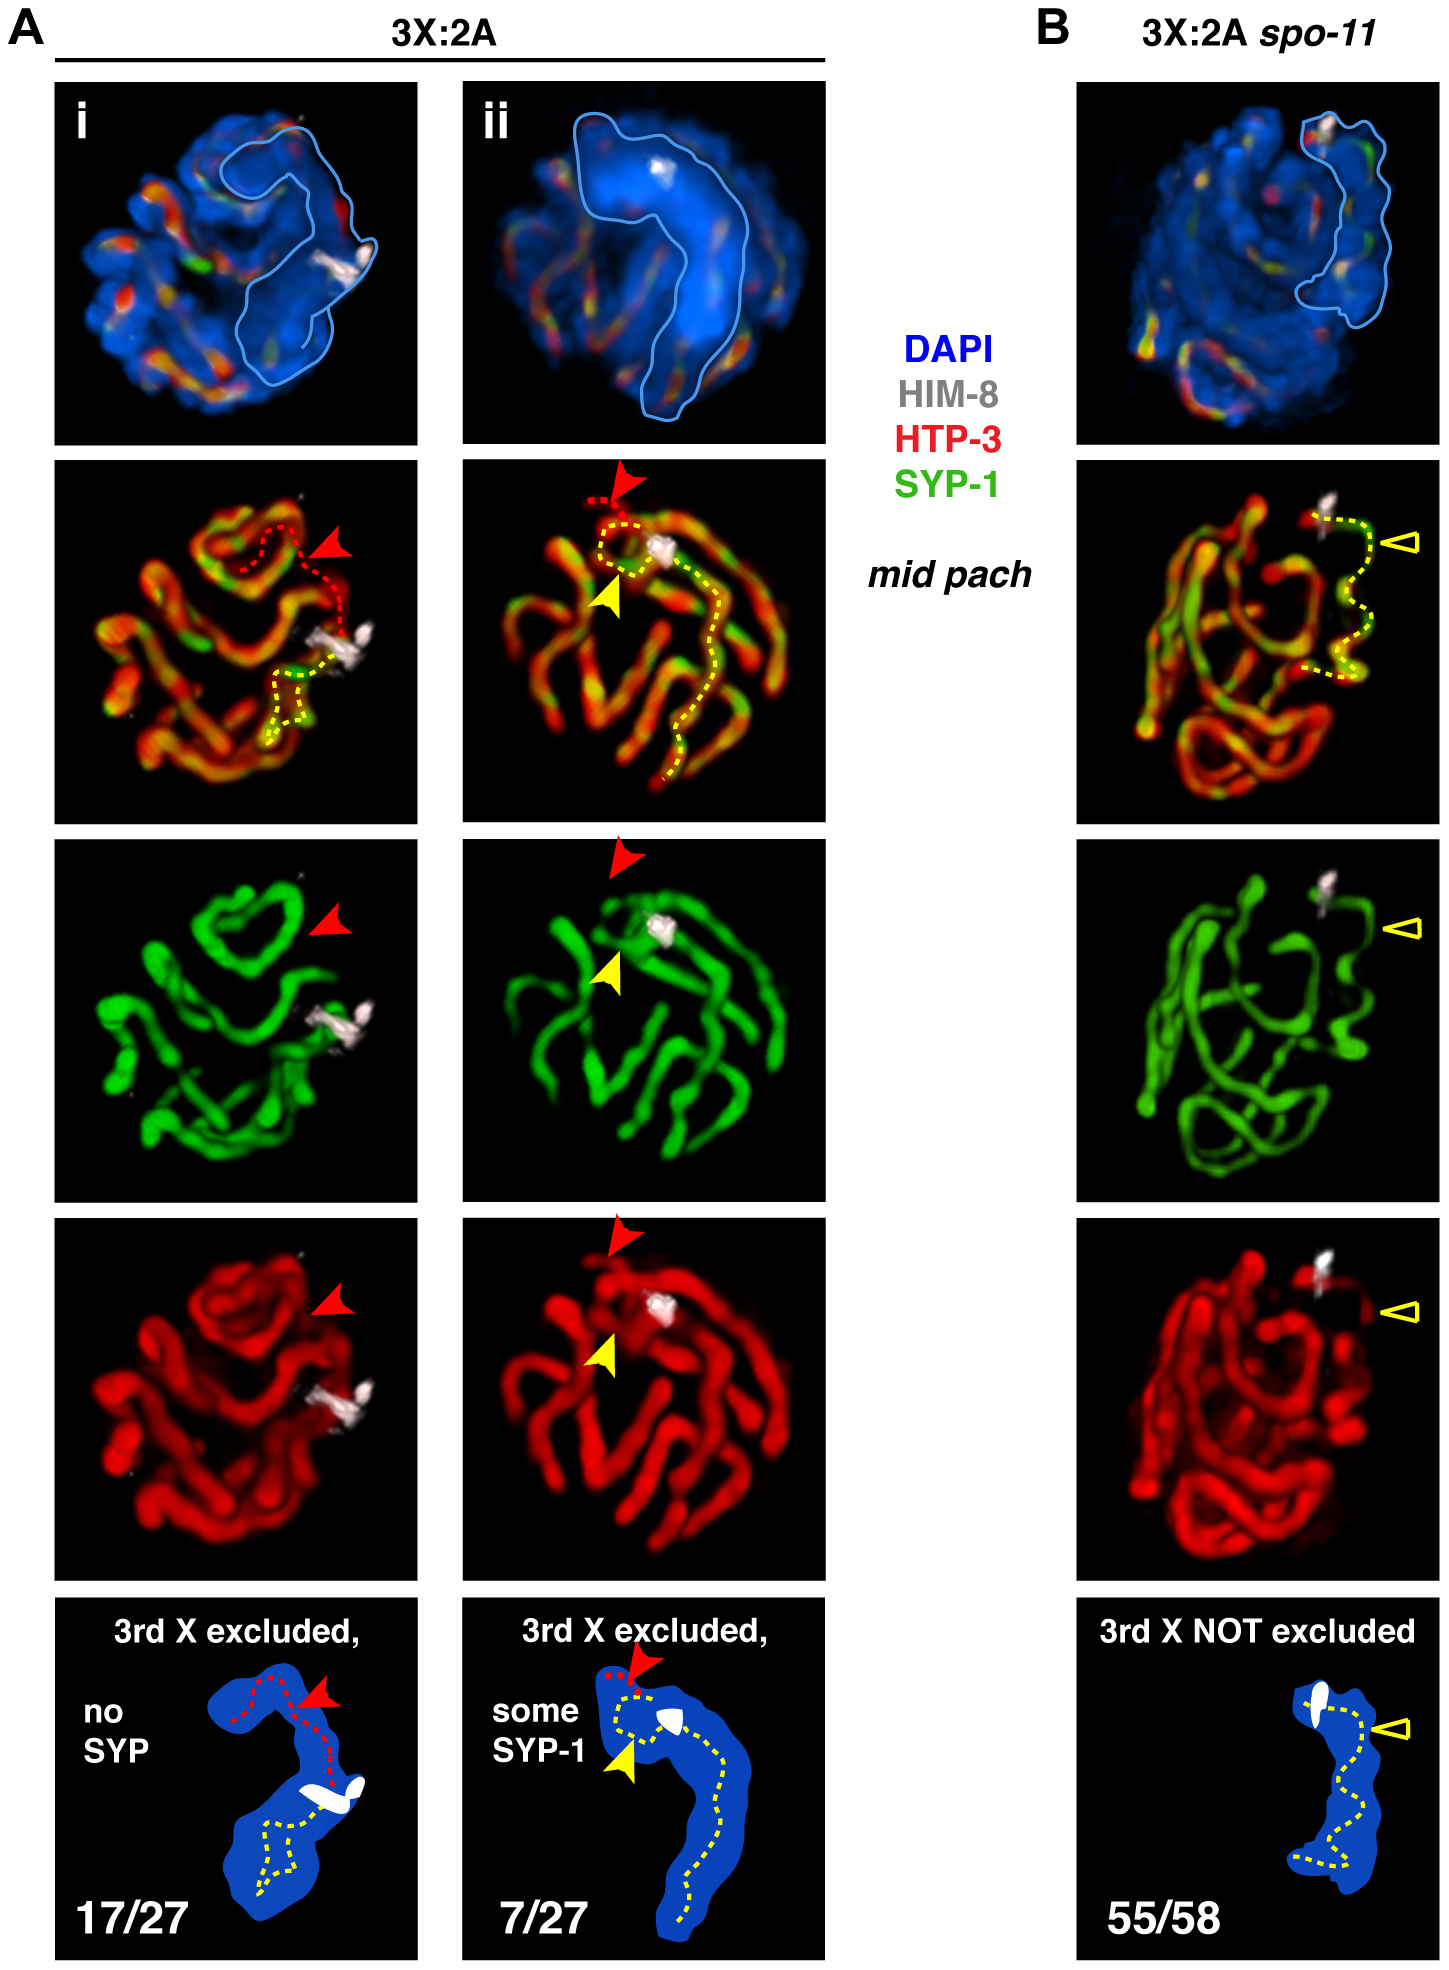 Inability to initiate recombination during triplo-X meiosis impairs establishment of exclusive, pairwise interactions.